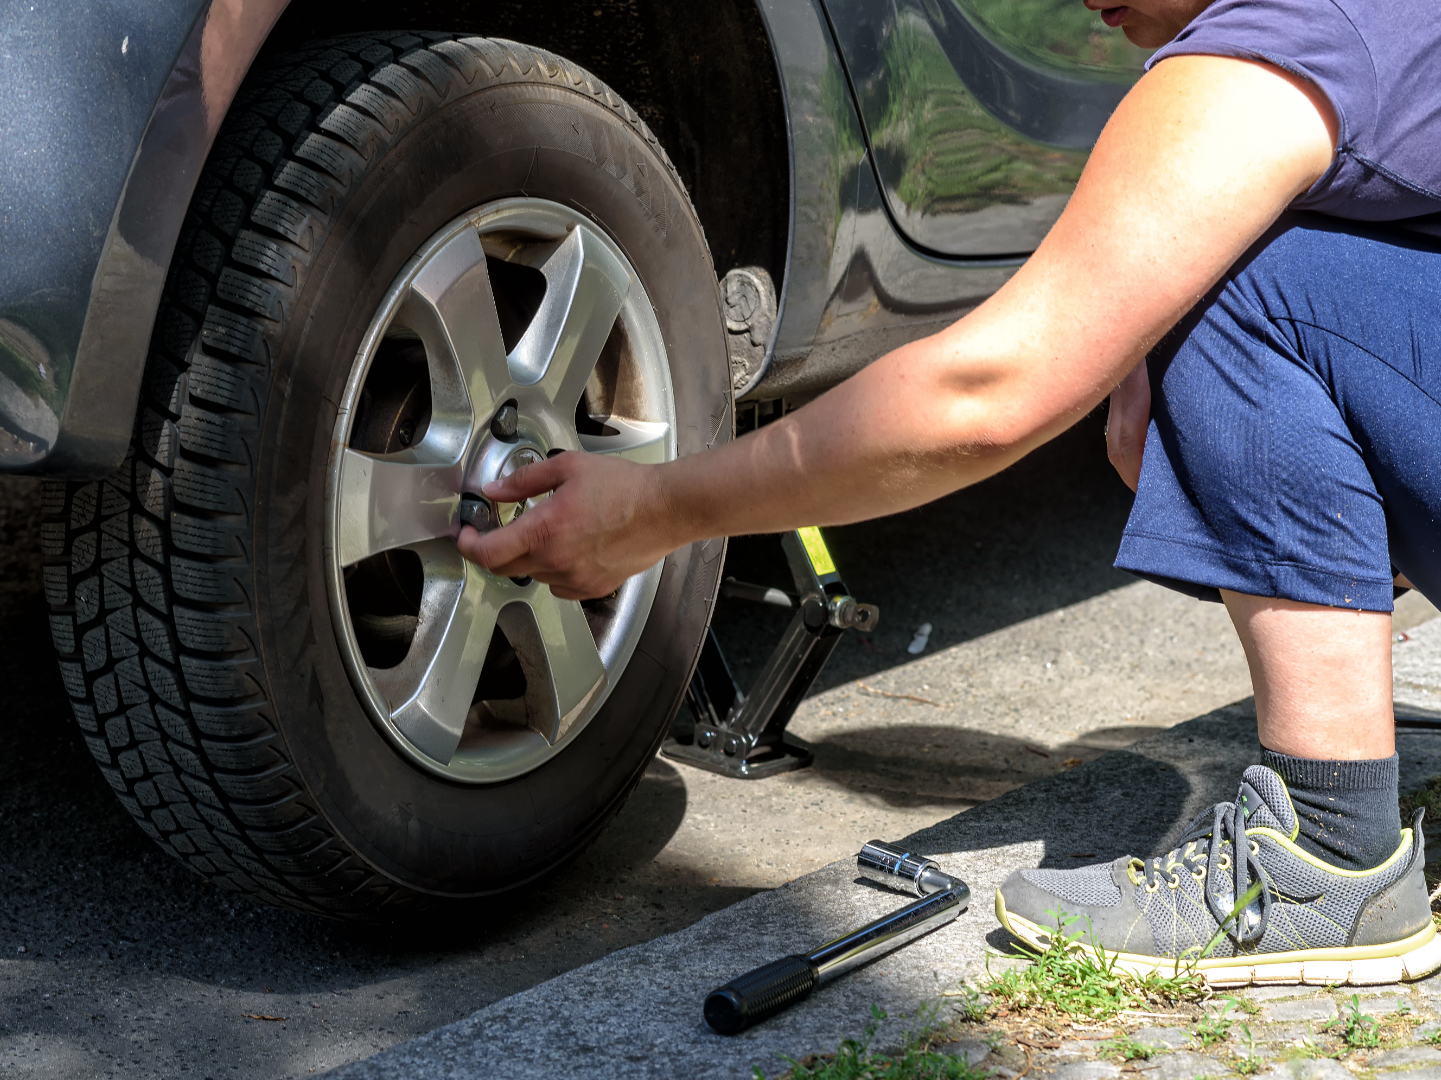 Q&A: Is it safe to change my own tires?